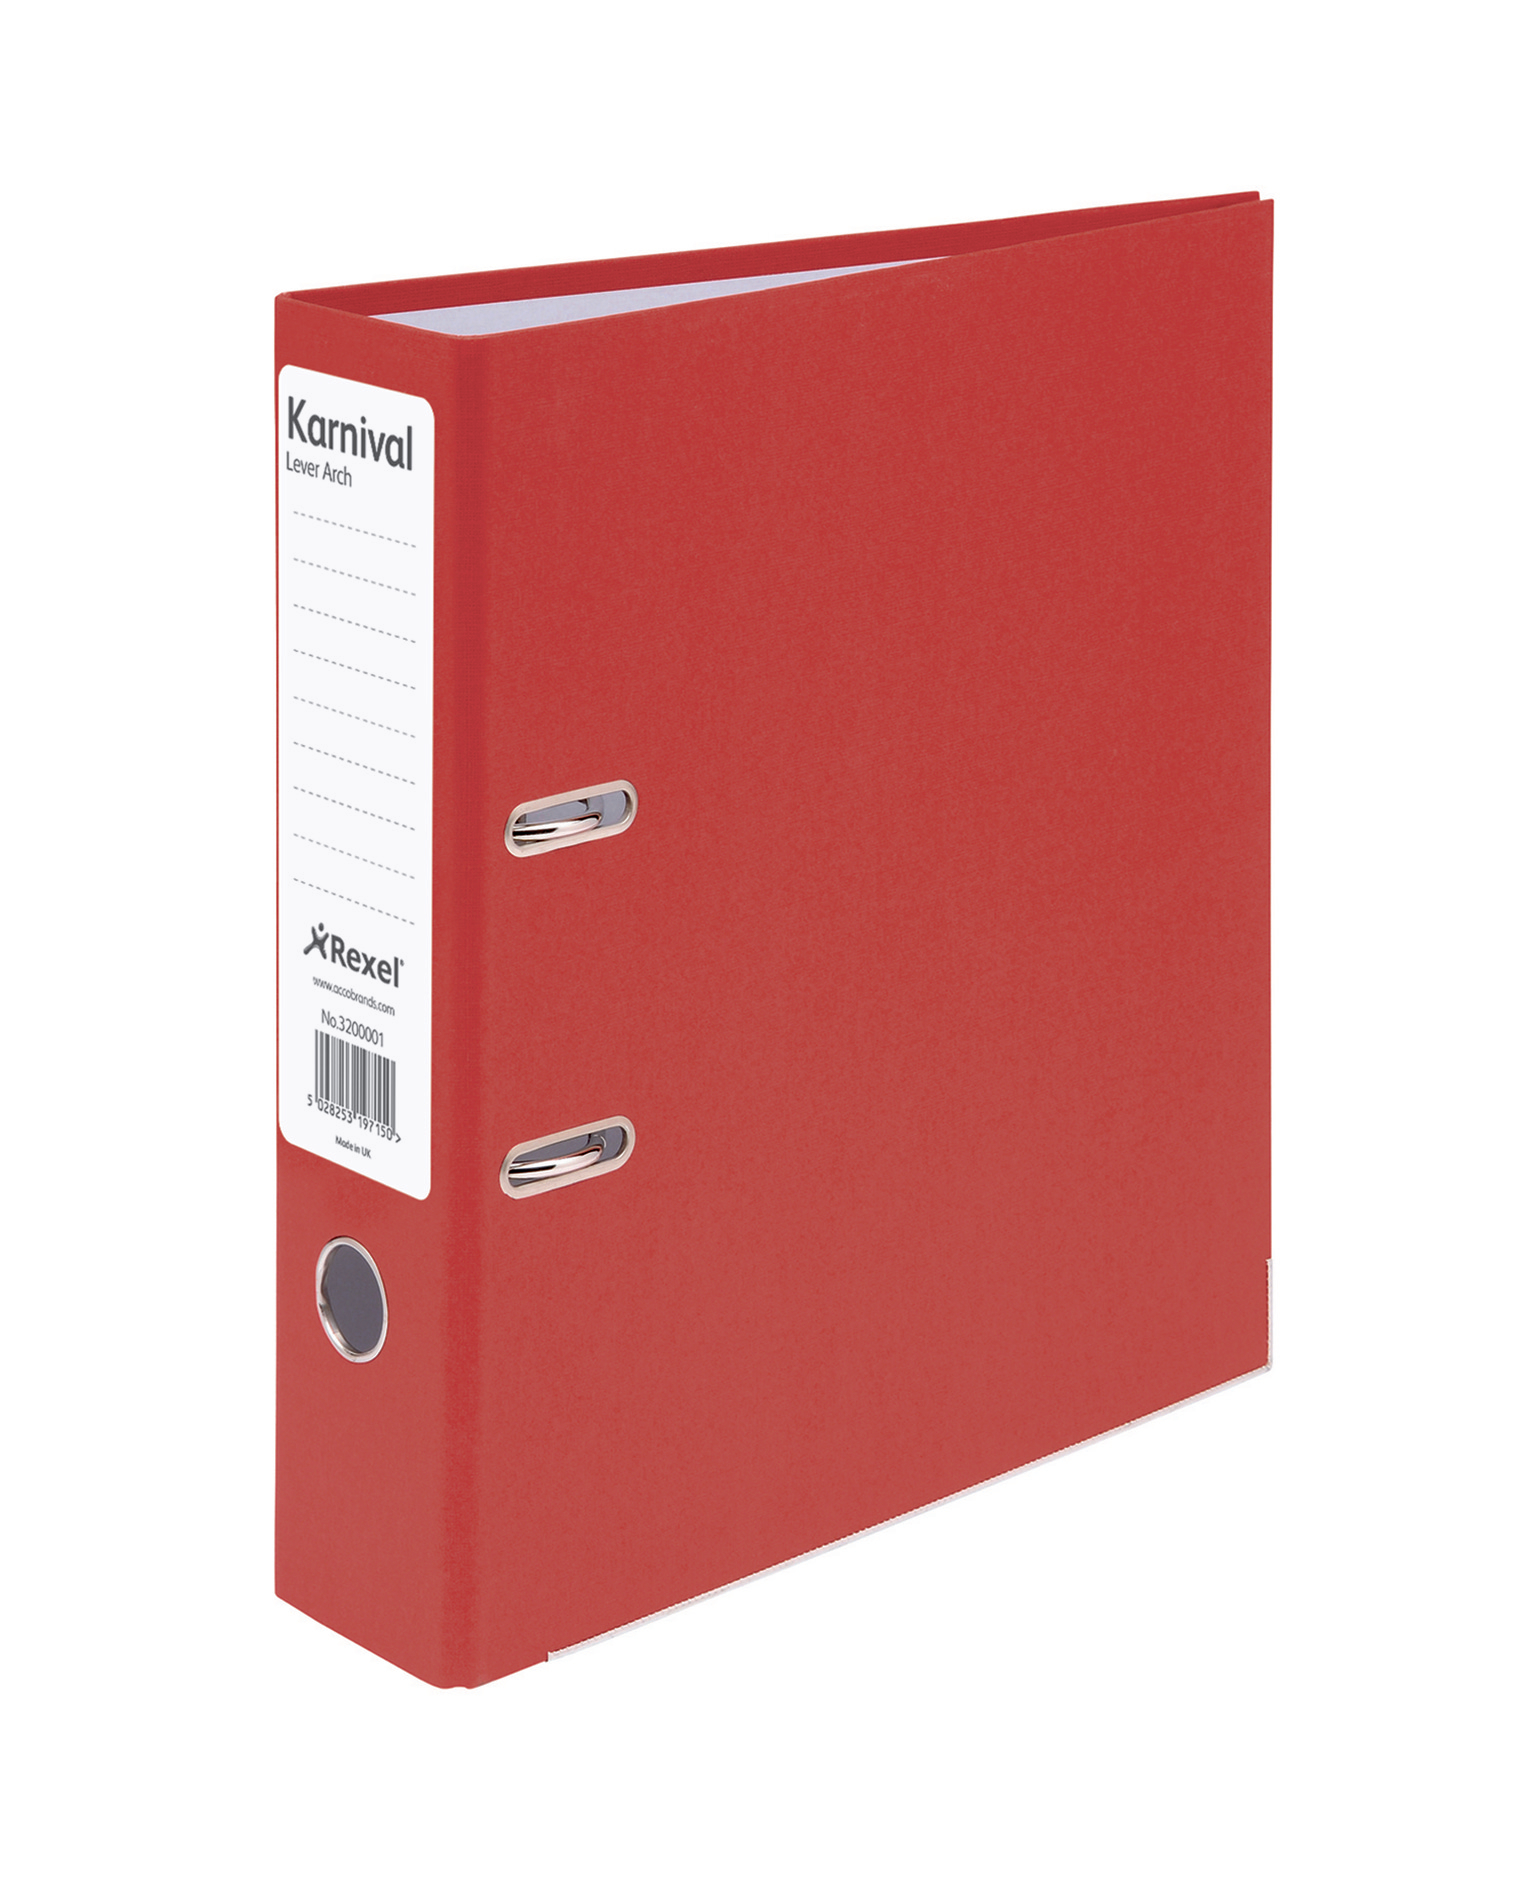 Rexel Karnival LAF Paper over Board 70mm A4 Red PK10